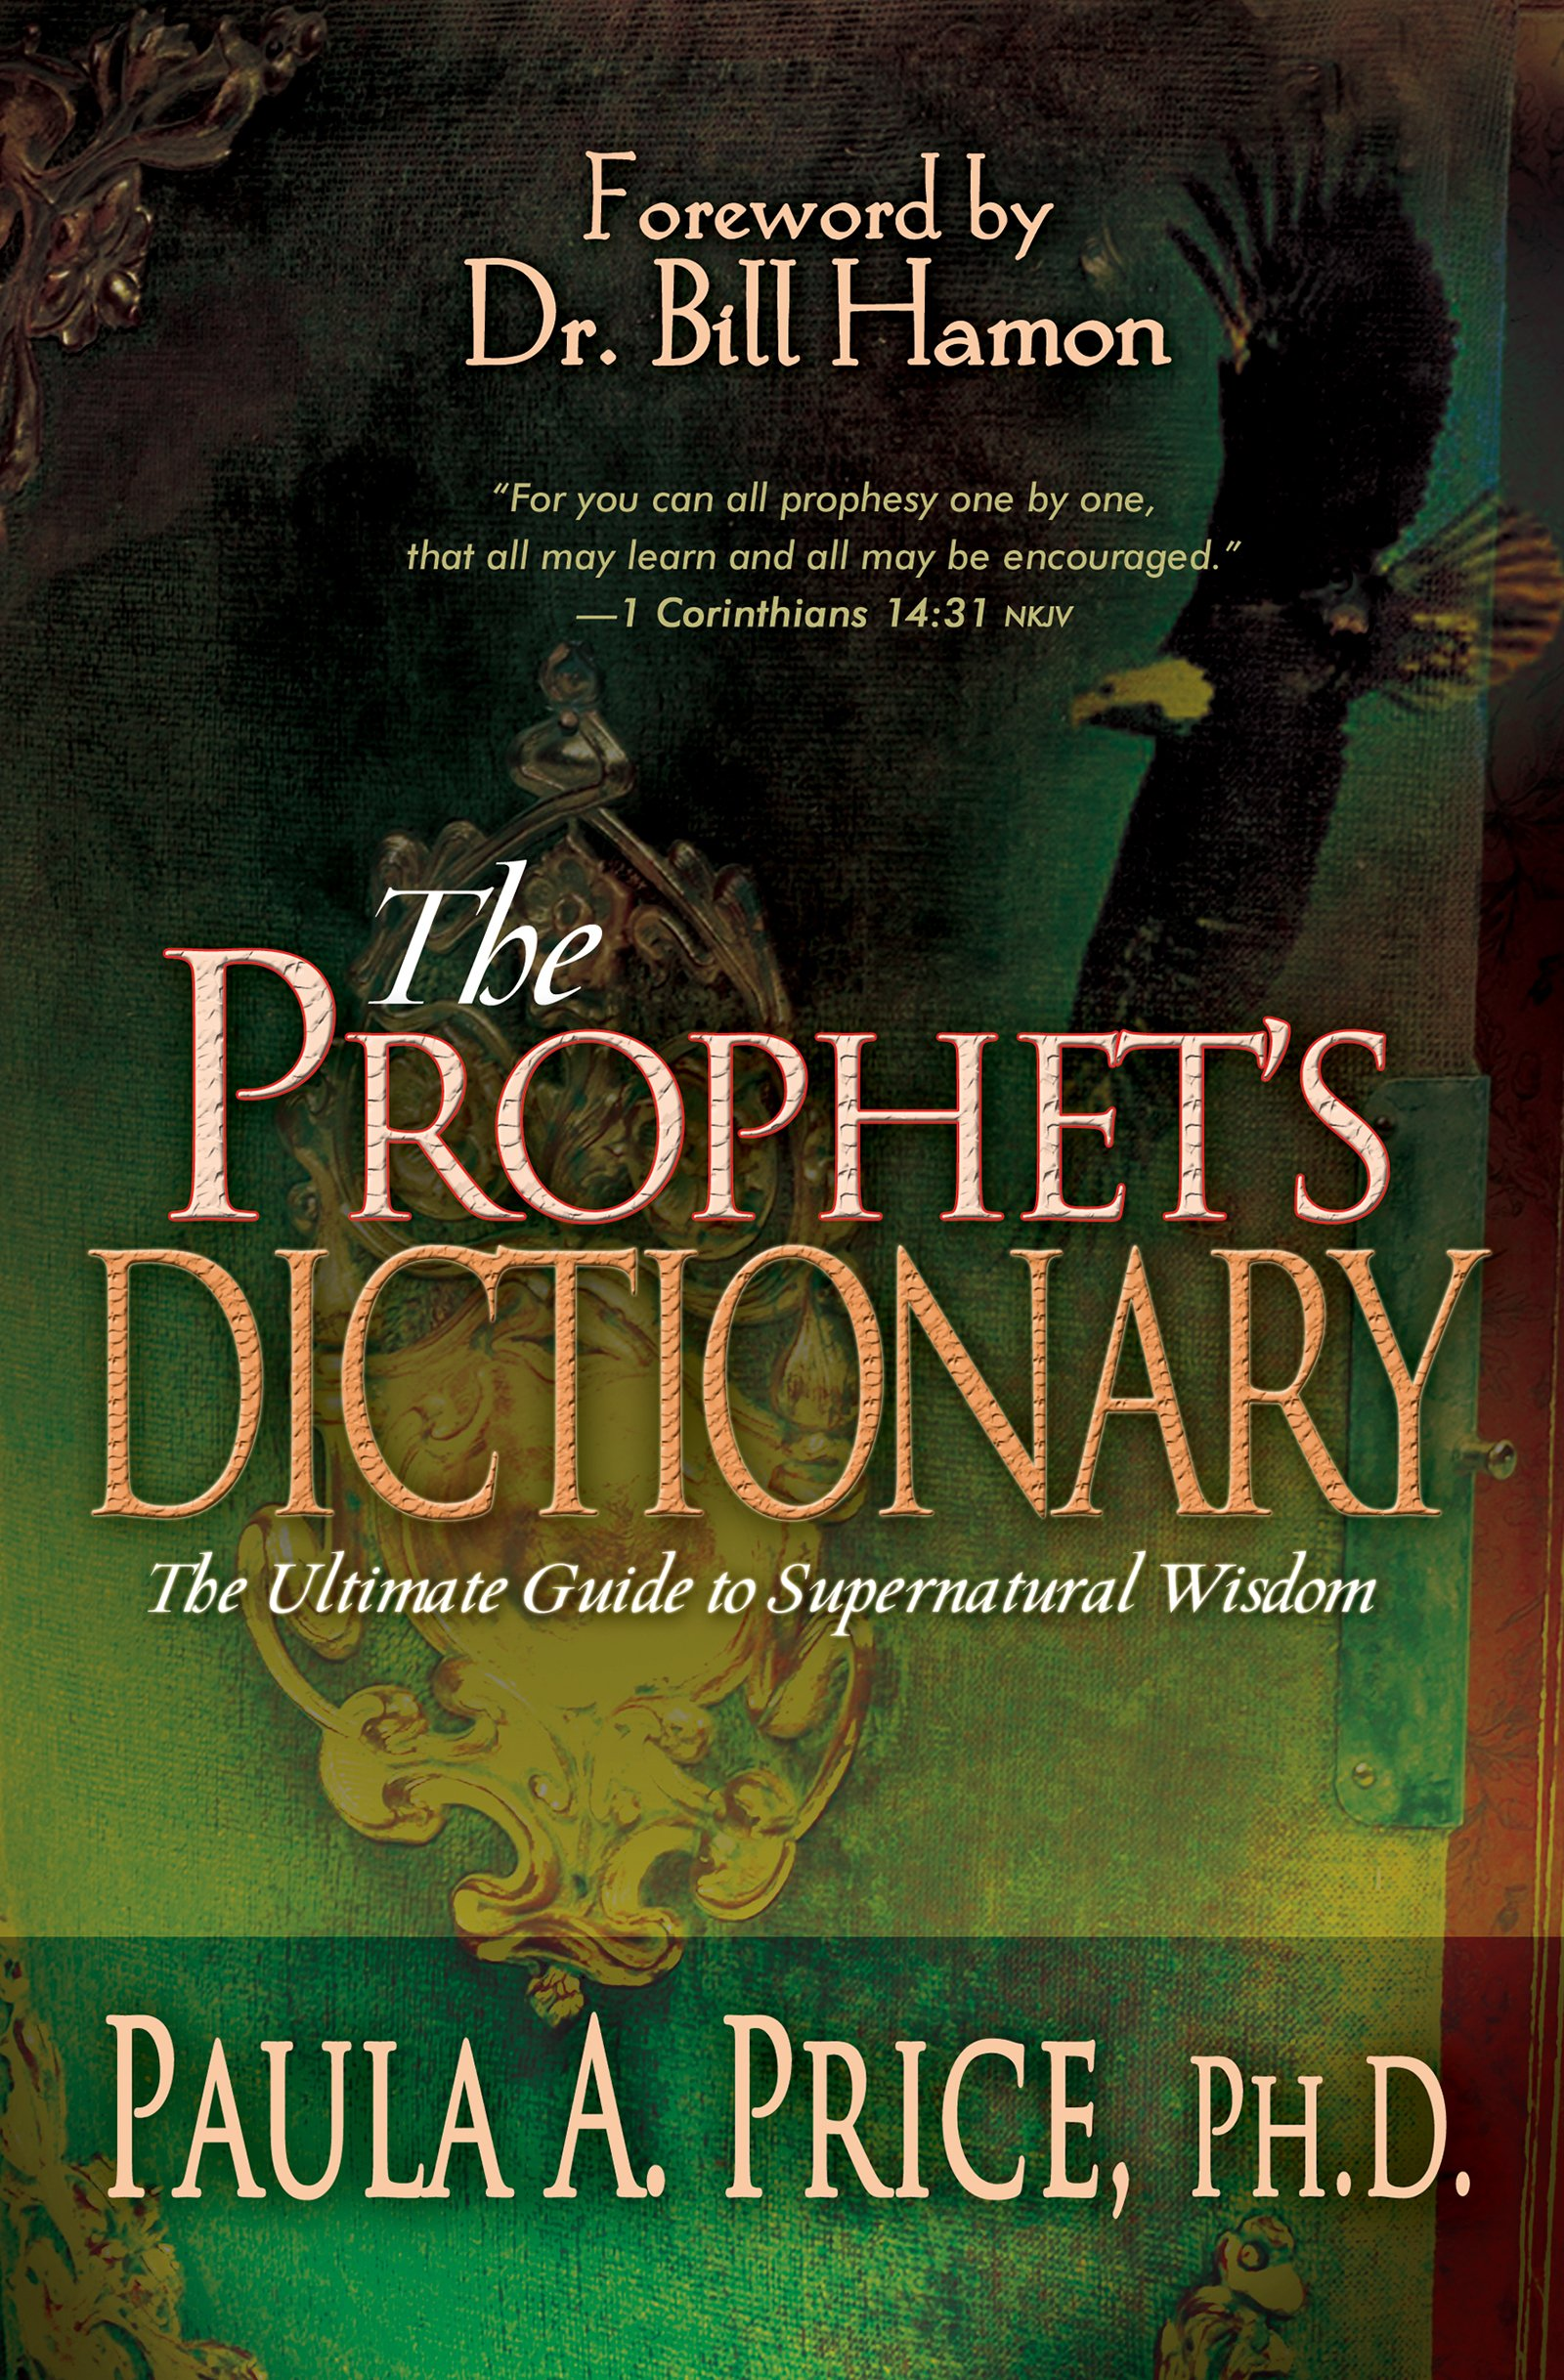 The Prophet's Dictionary: The Ultimate Guide to Supernatural Wisdom: Paula  A. Price Ph.D, Bill Hamon: 9780883689998: Amazon.com: Books